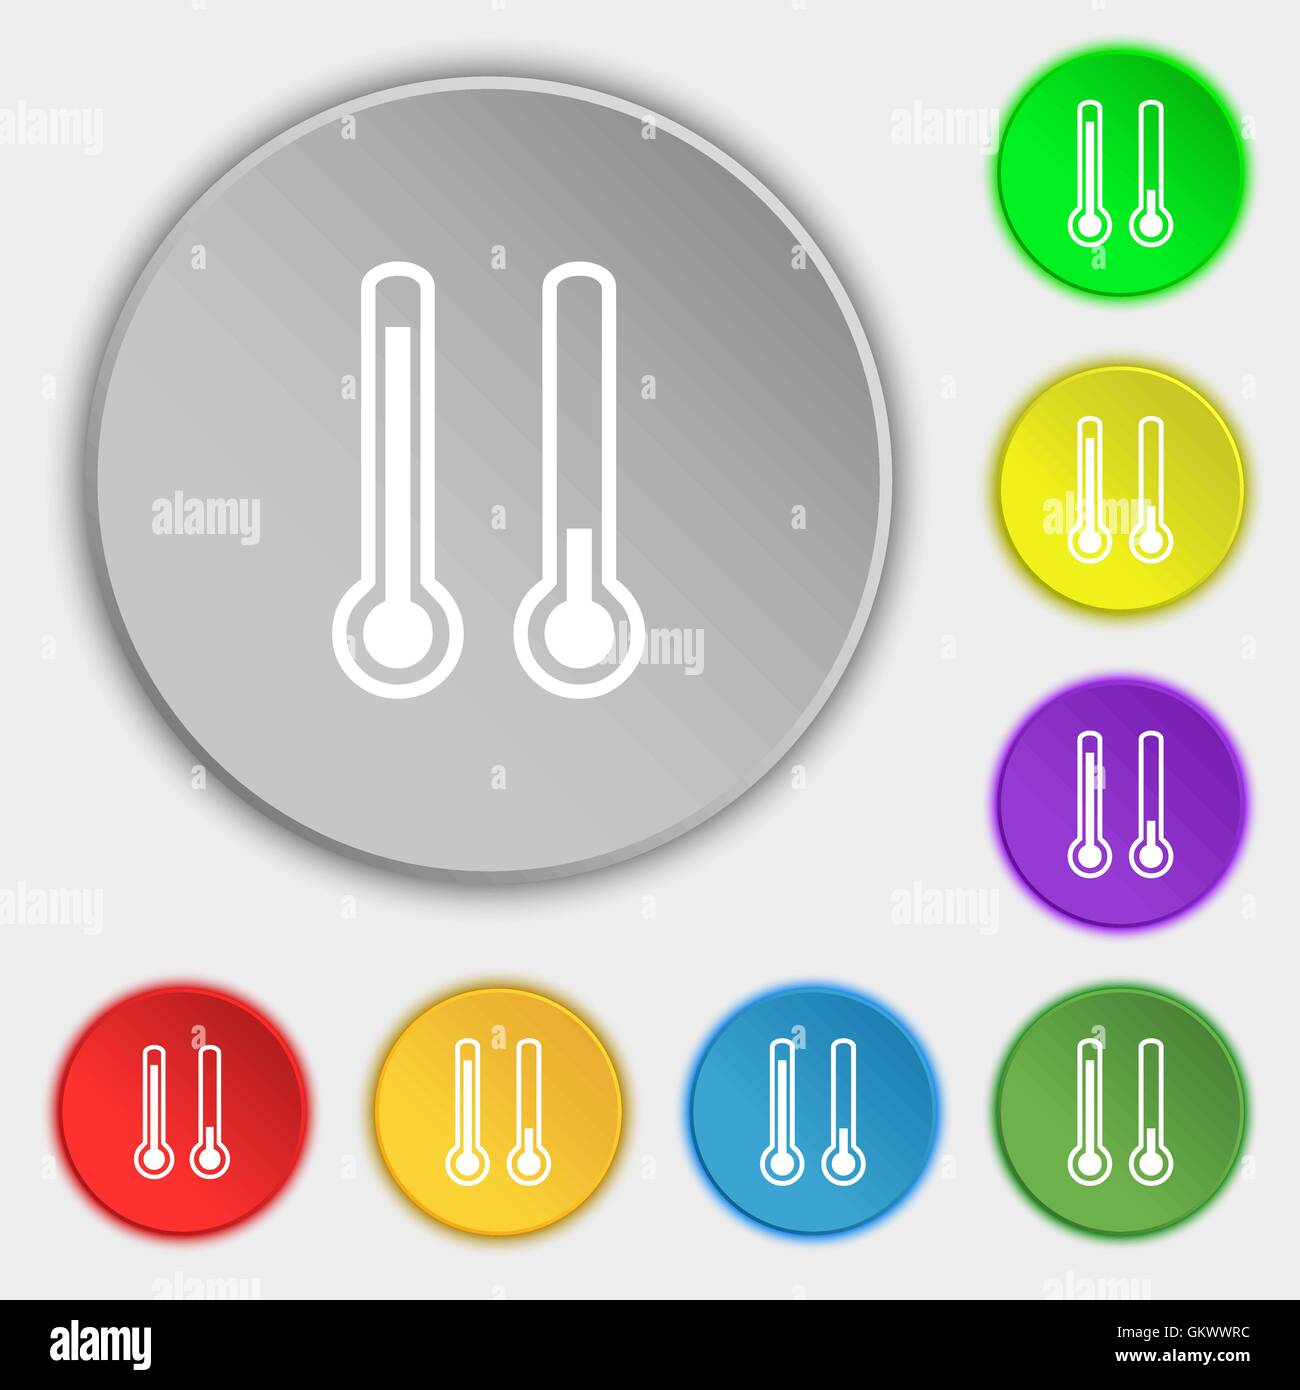 Thermometer Icon High Low Temperature Stock Vector Images - Alamy